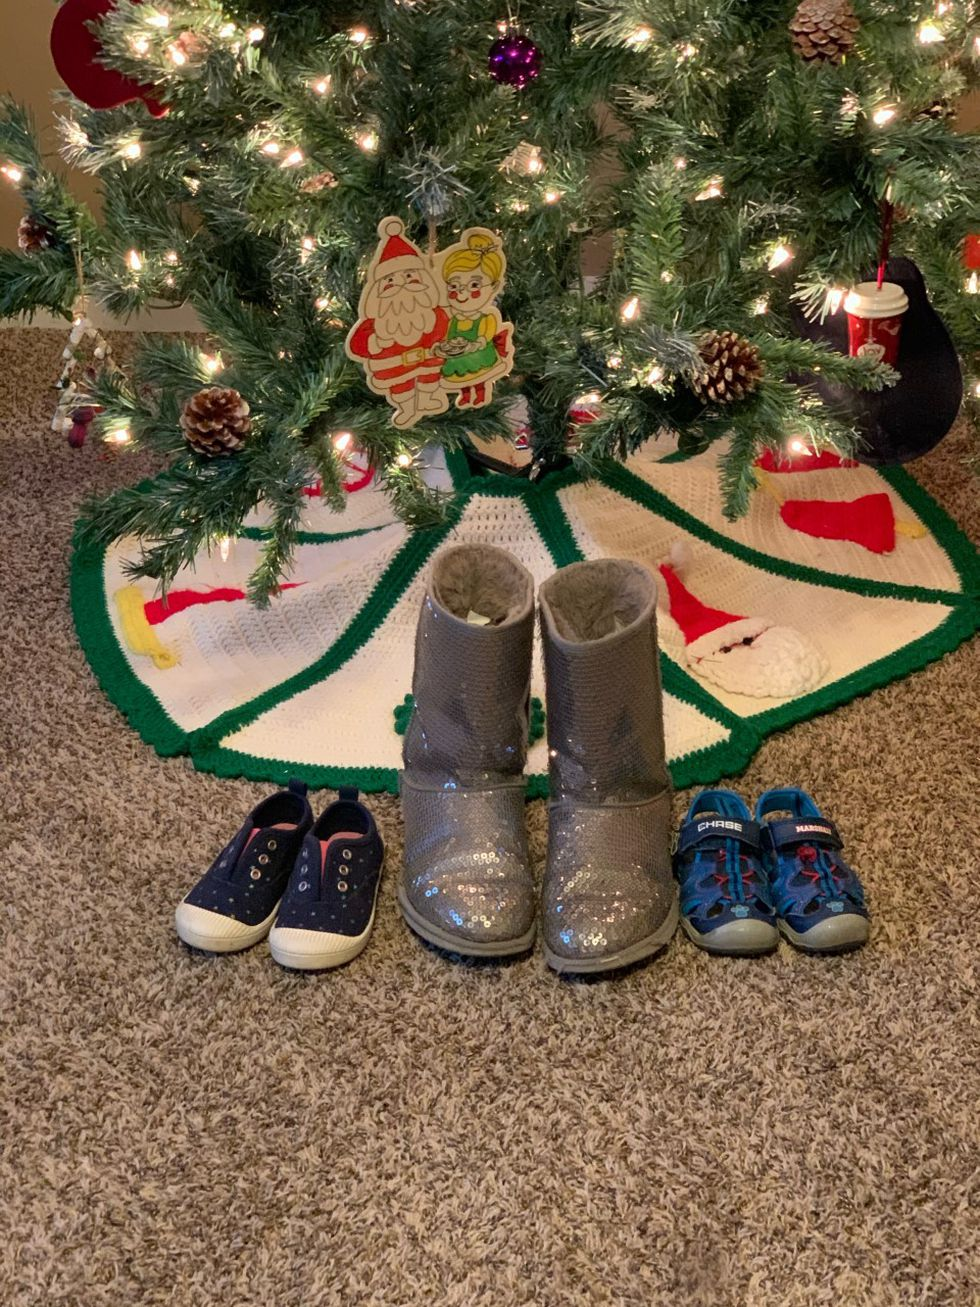 Children's shoes placed under Christmas tree